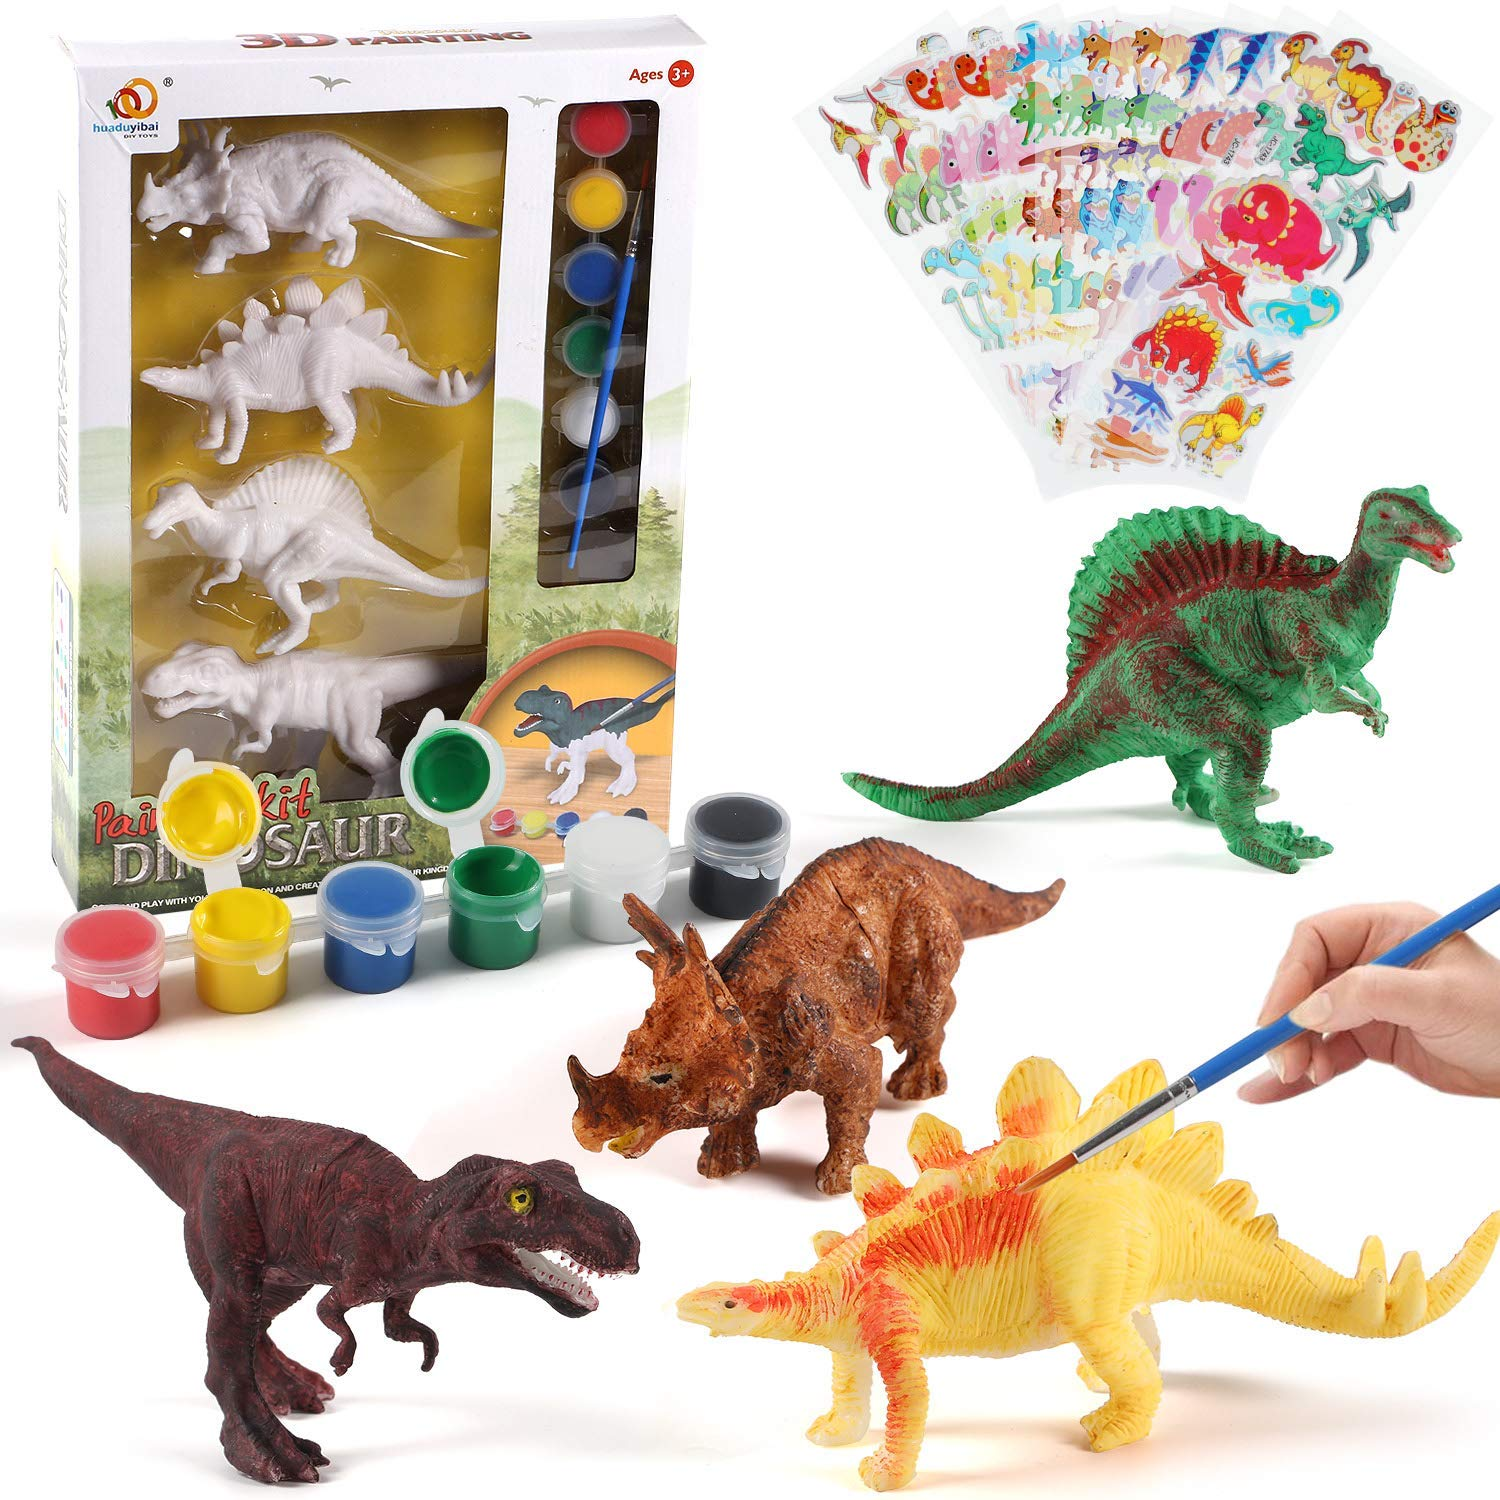 NEOWOWS Decorate Your Own Dinosaur Figurines DIY Dinosaur Arts Crafts 3D Painting Dinosaurs Toys for Kids Boys Girls by NEOWOWS